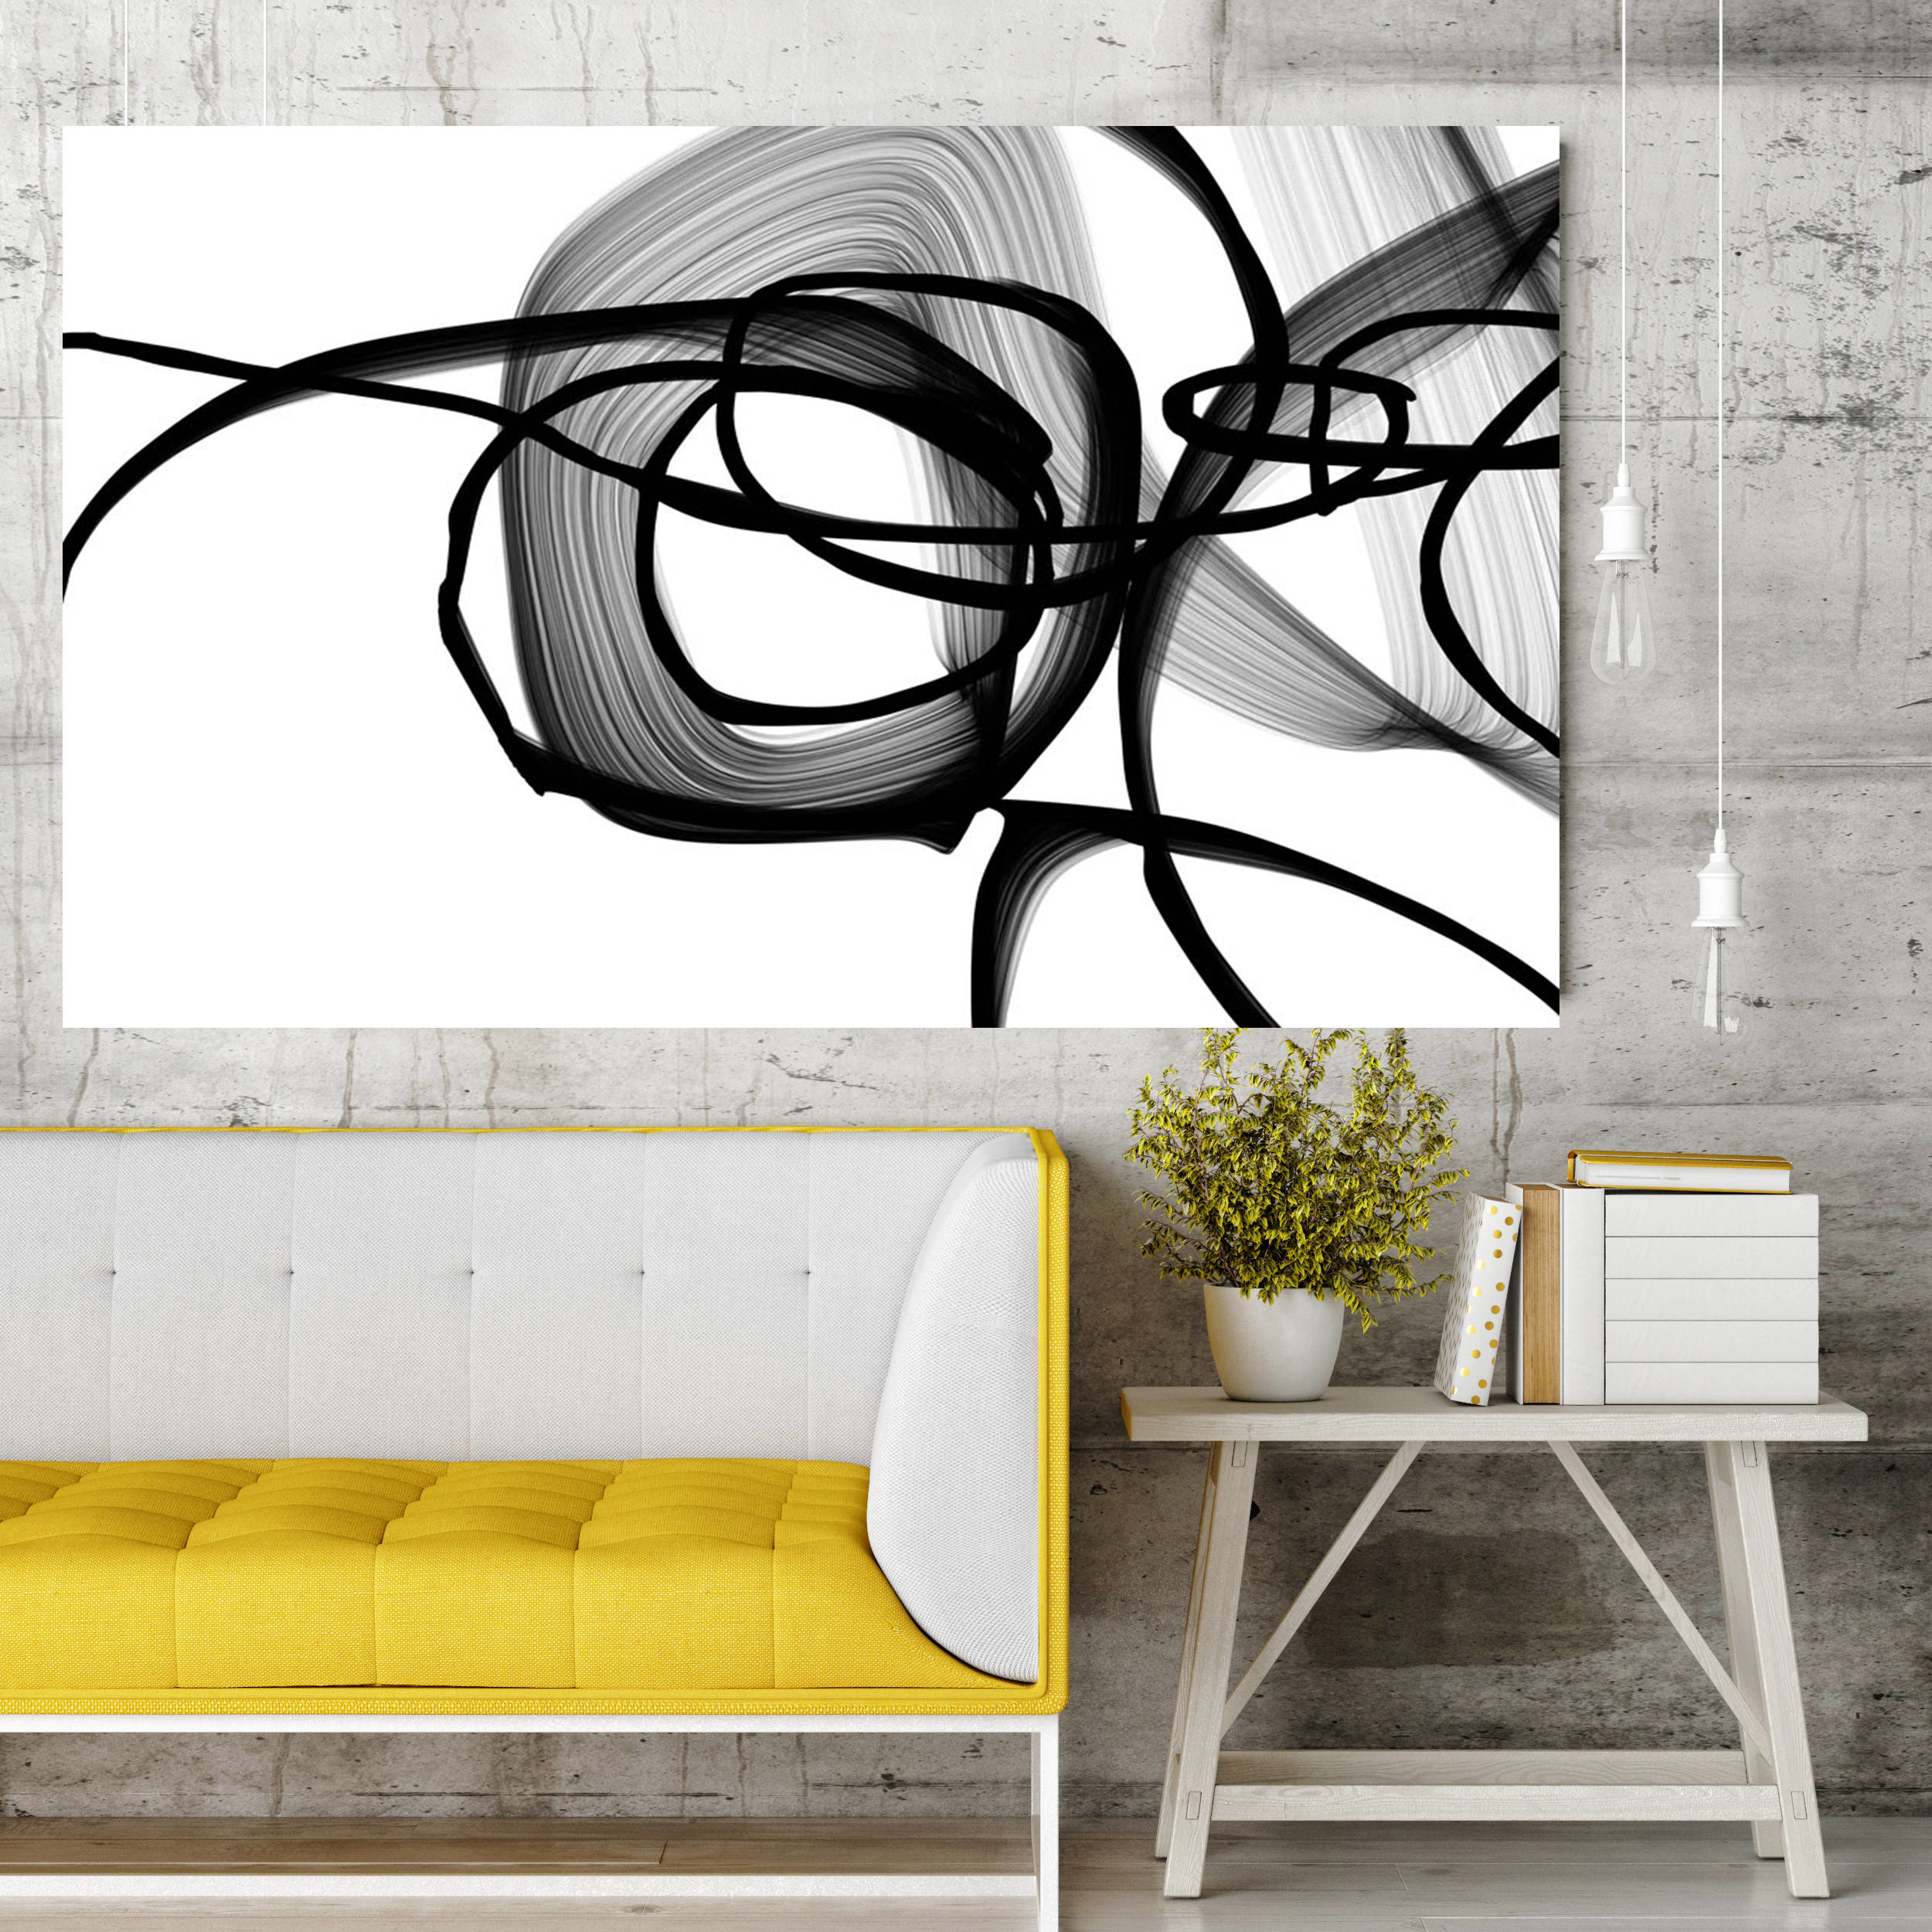 Irena Orlov Expressionismblack Painting Print Wrapped Canvas Abstract